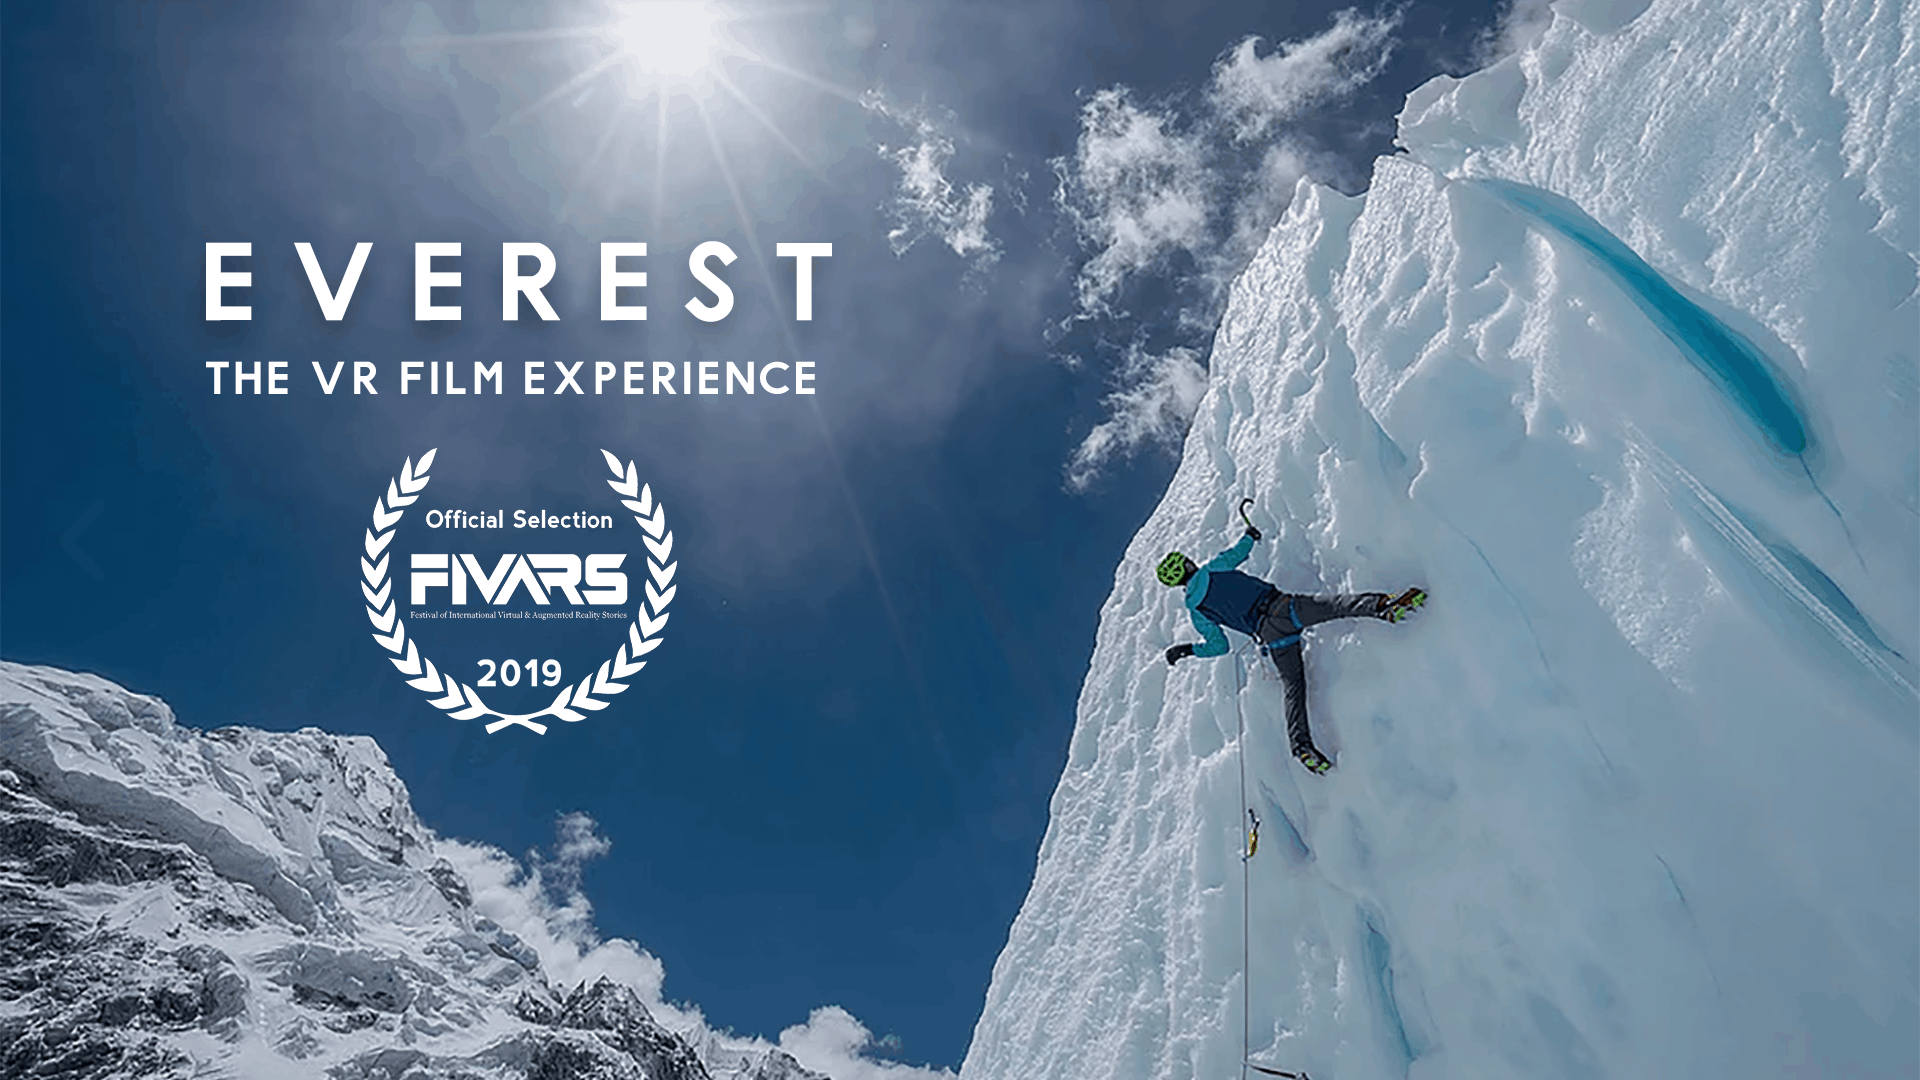 Everest The Vr Film Experience Fivars